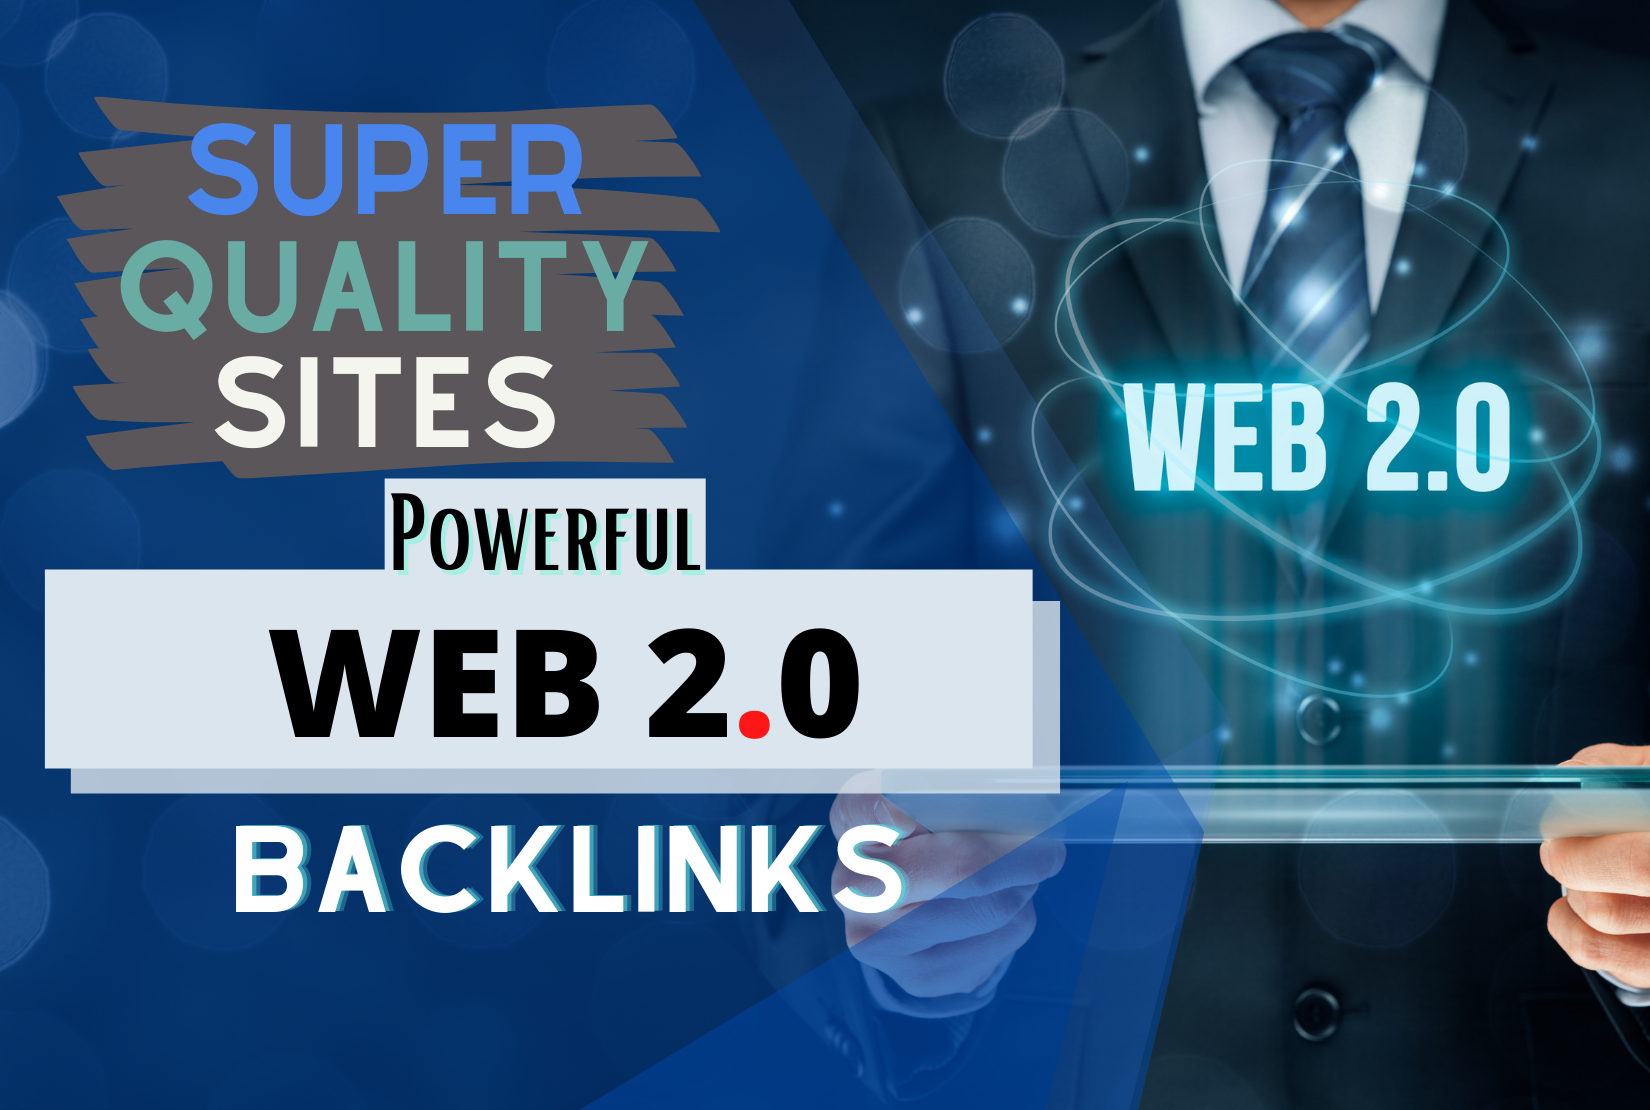 Boost your website ranking with 20+ High quality Web 2.0 Backlinks